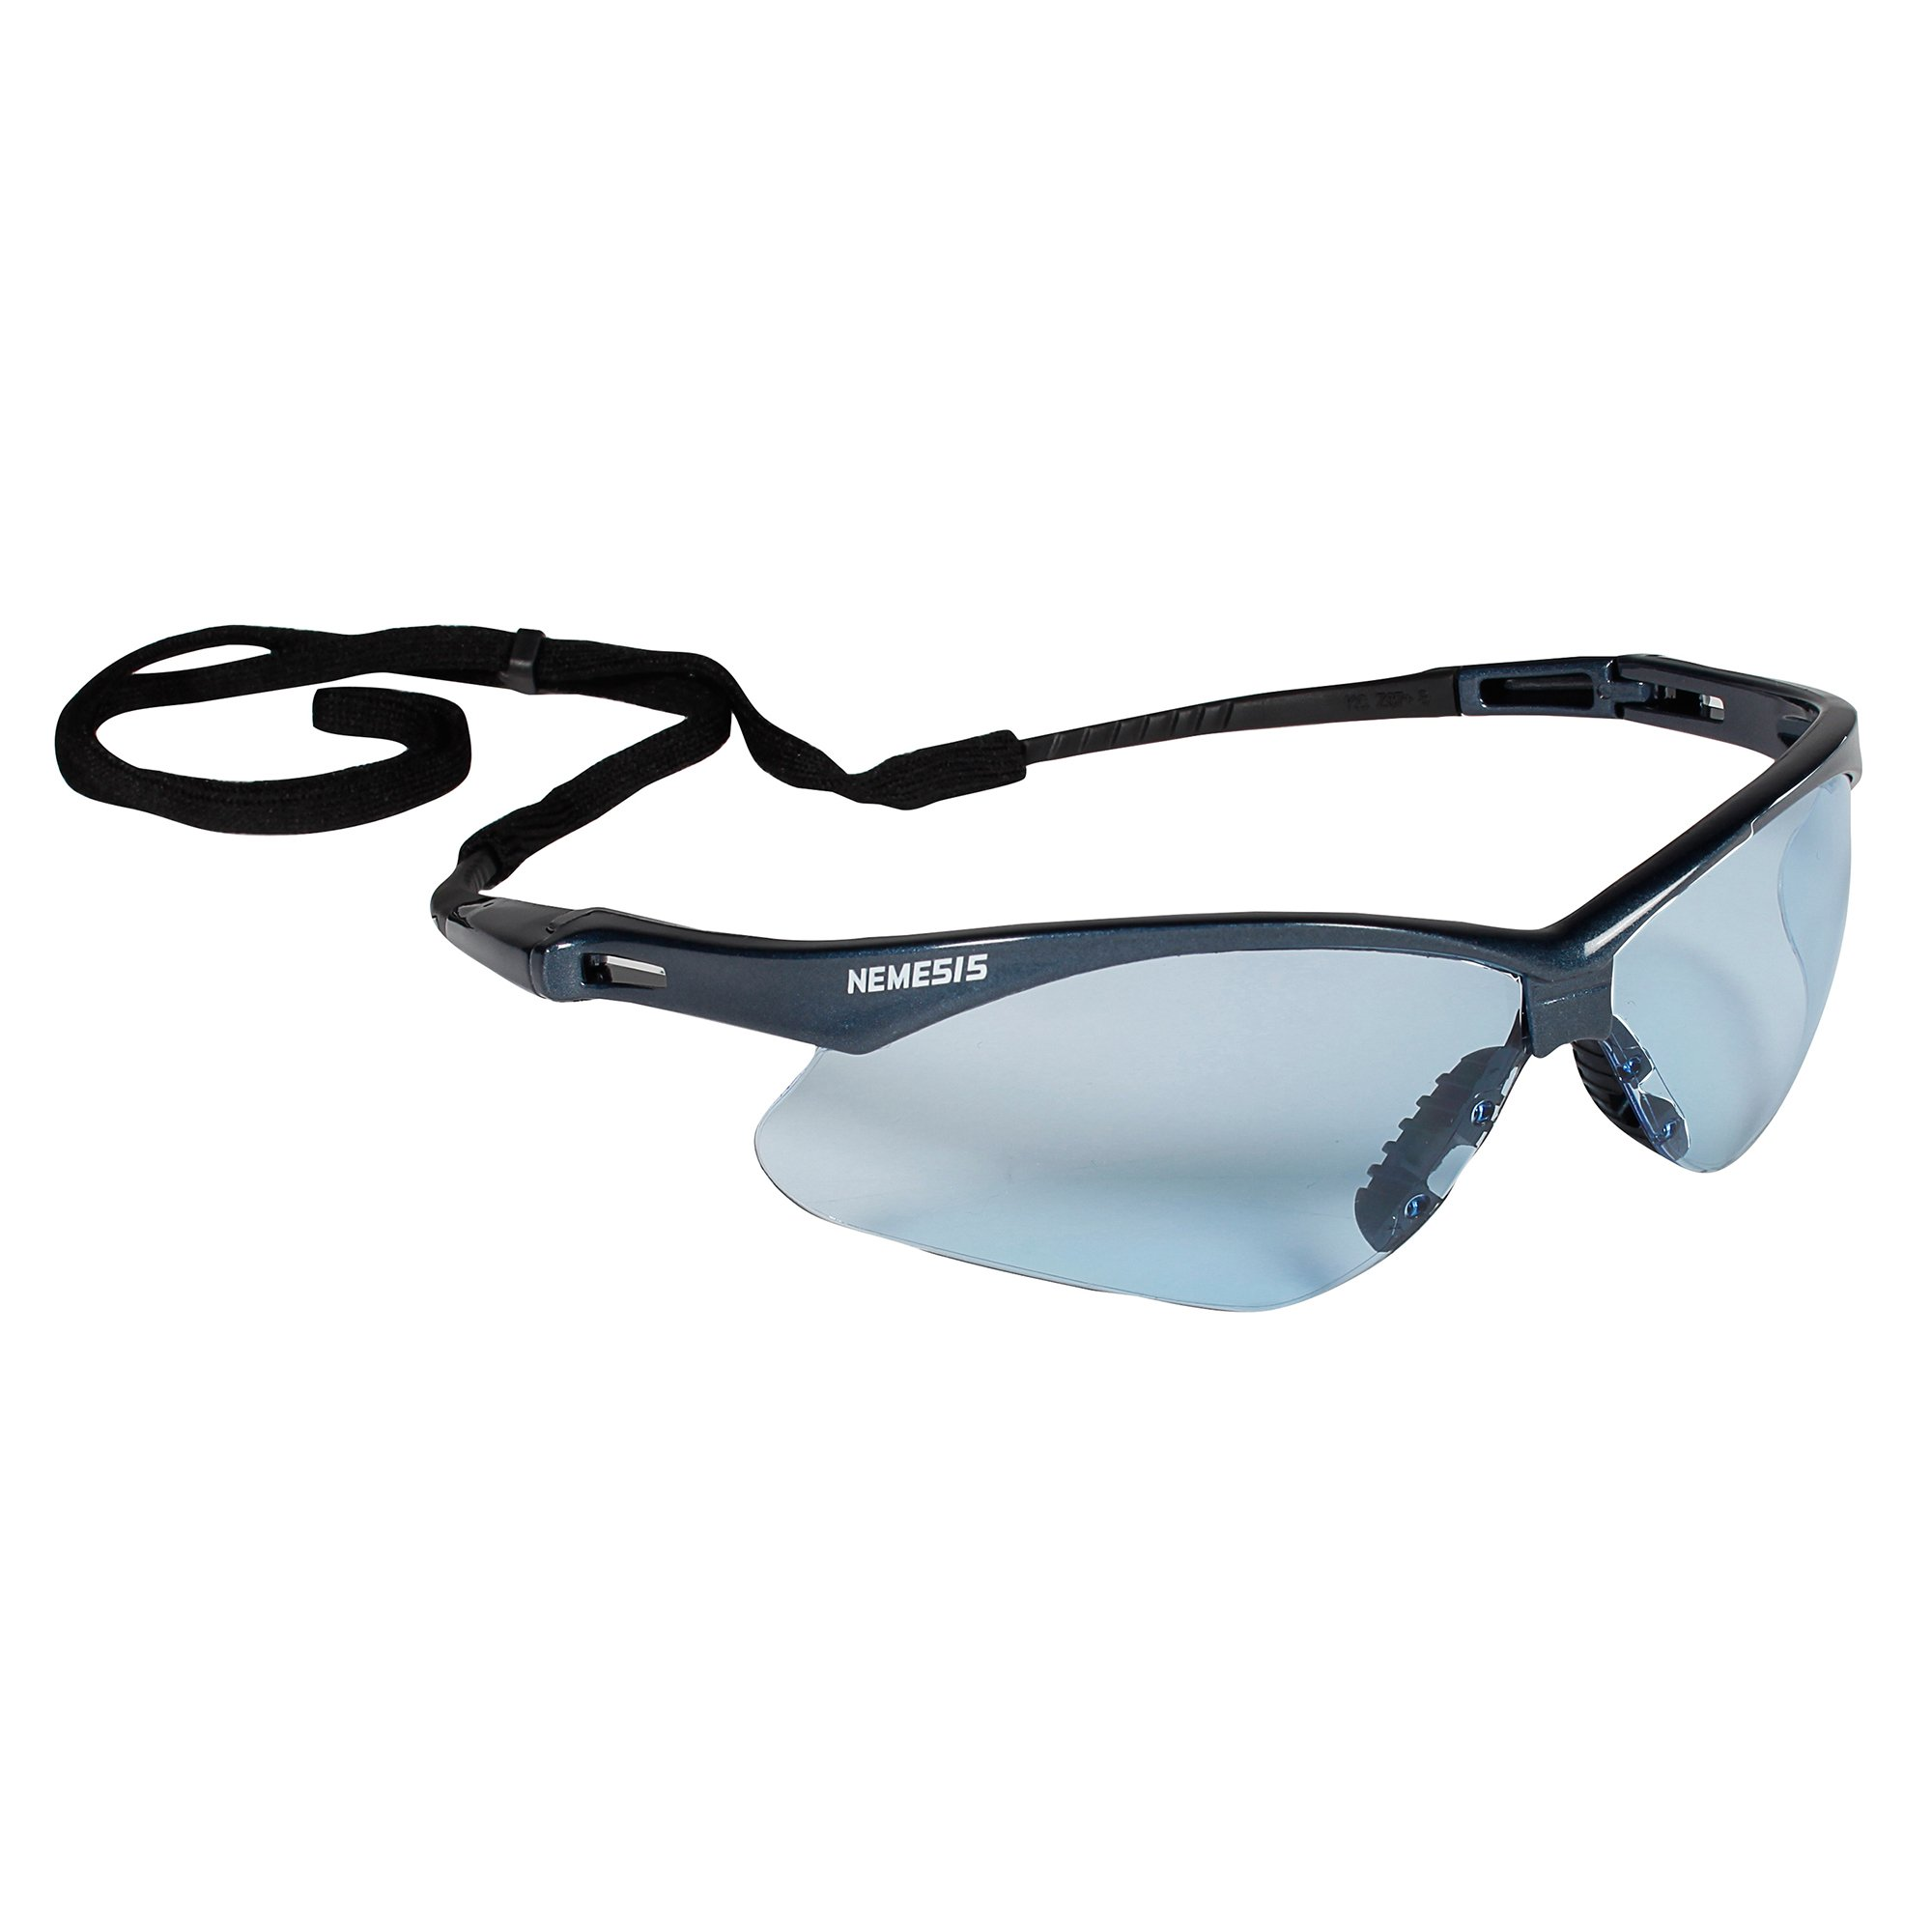 Jackson Safety V30 Nemesis Safety Glasses (19639), Light Blue Lenses with Blue Frame, 12 Pairs / Case by Jackson Safety (Image #1)